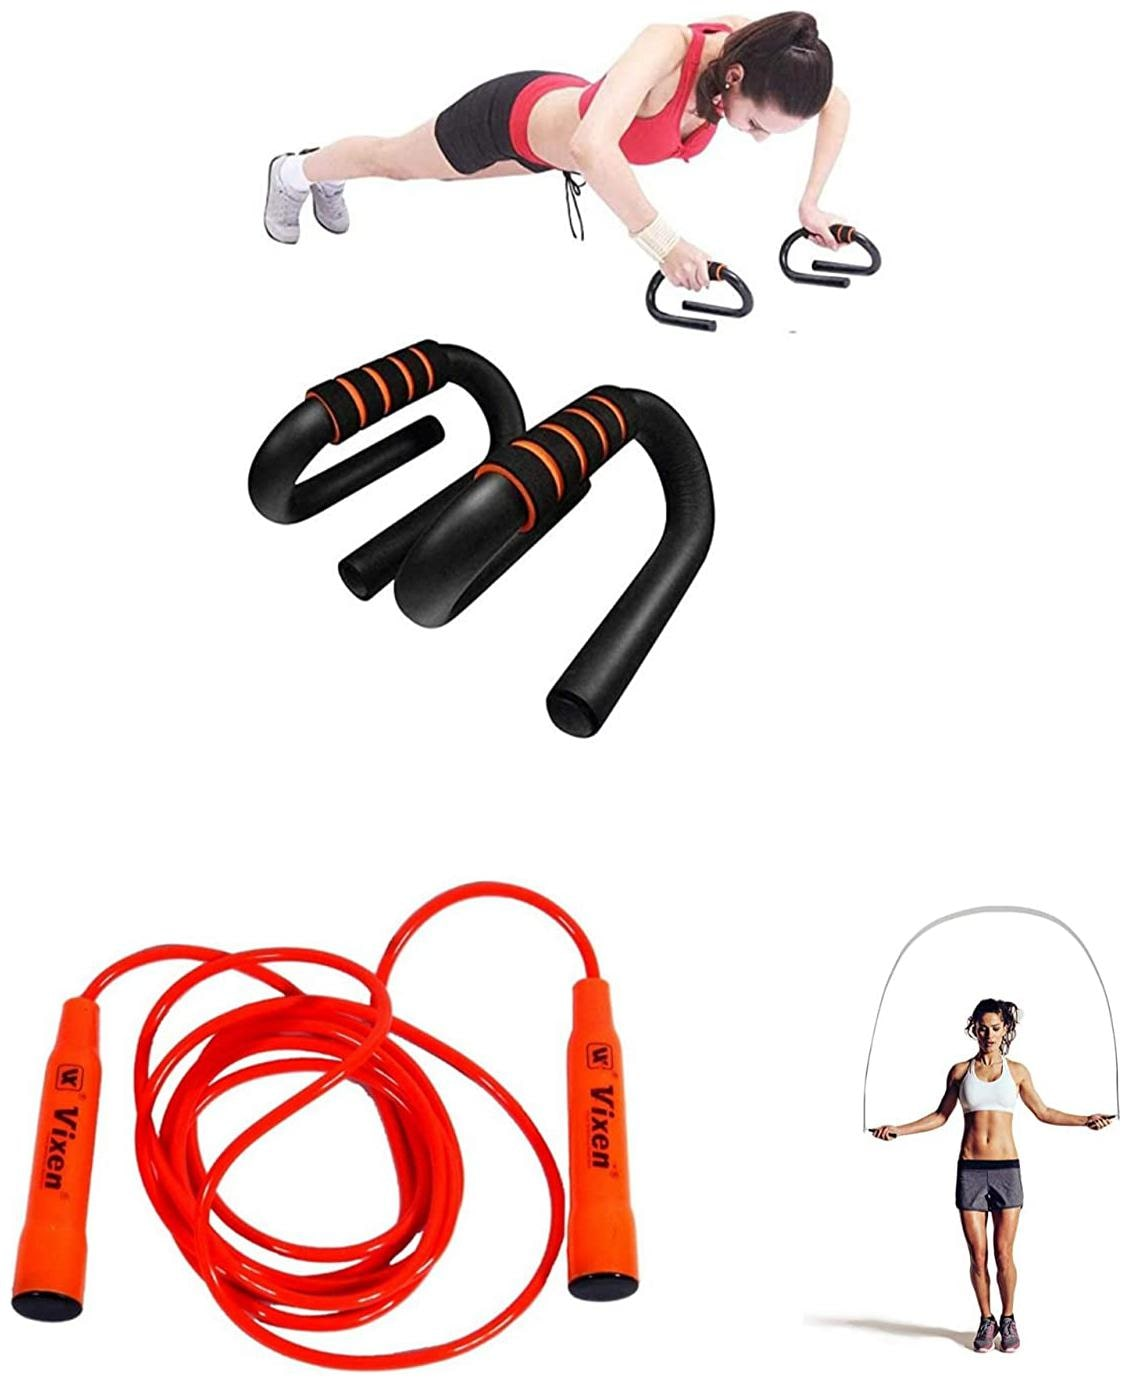 ZINOM 2 in 1 {Combo Pack   Push up Bars Dip Stands + Jumping Rope} Orange Color for Unisex